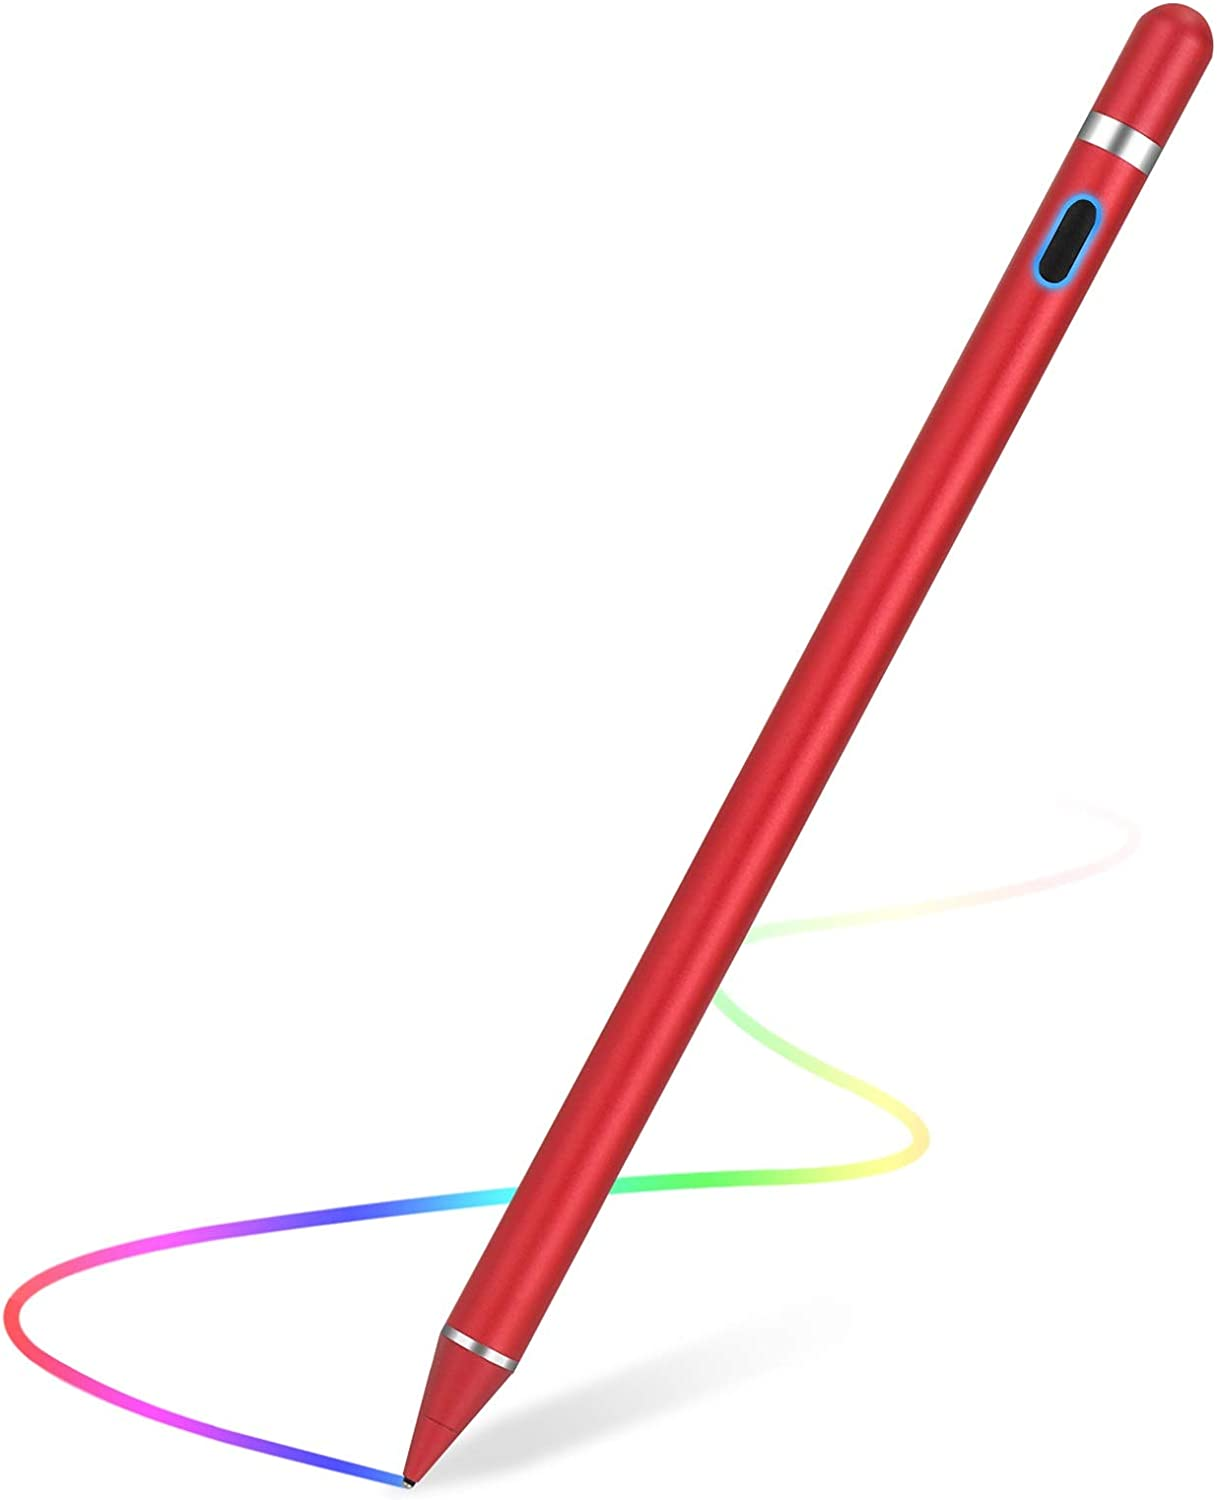 Stylus Pen for Touch Screens Rechargeable 1.5mm Fine Point Active Capacitive Stylus Smart Pencil Digital Compatible iPad and Most Tablet (RED)